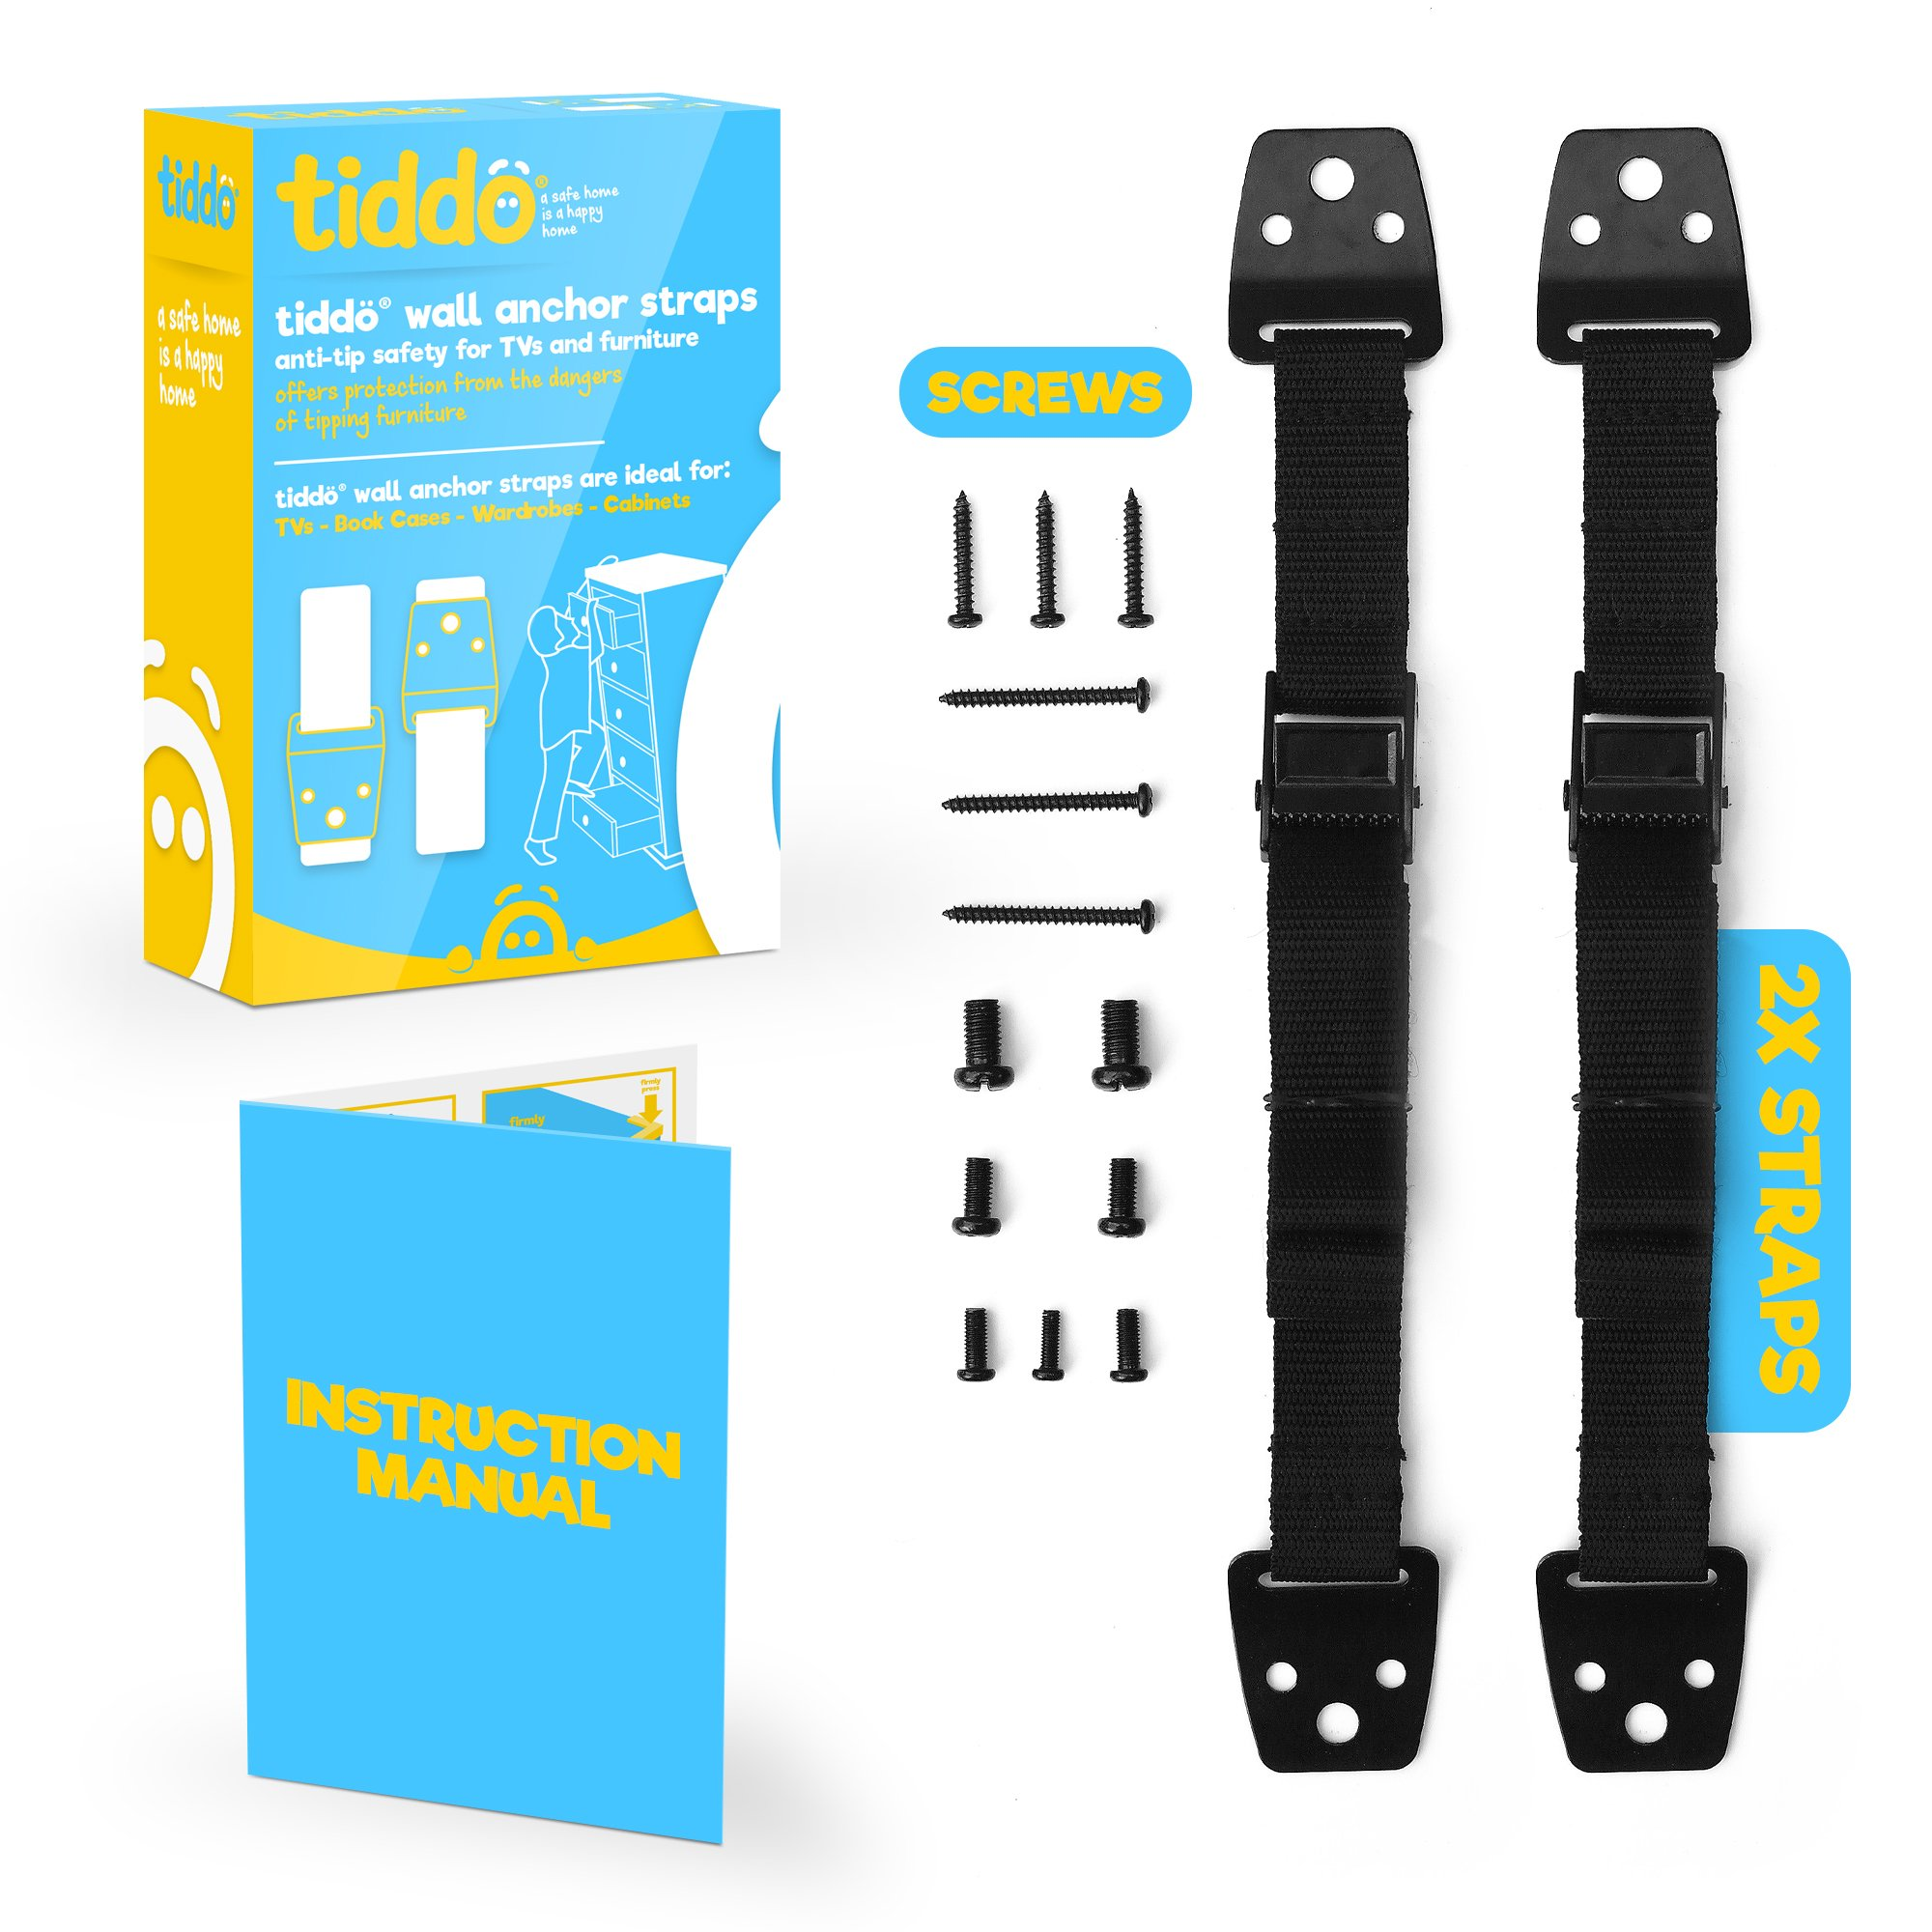 FLASH SALE | tiddö Anti-Tip Safety Wall Anchor Straps for TVs and Furniture Belts, Baby Proofing Anti Tip Flatscreen TV Strap with VESA Screws by tiddö